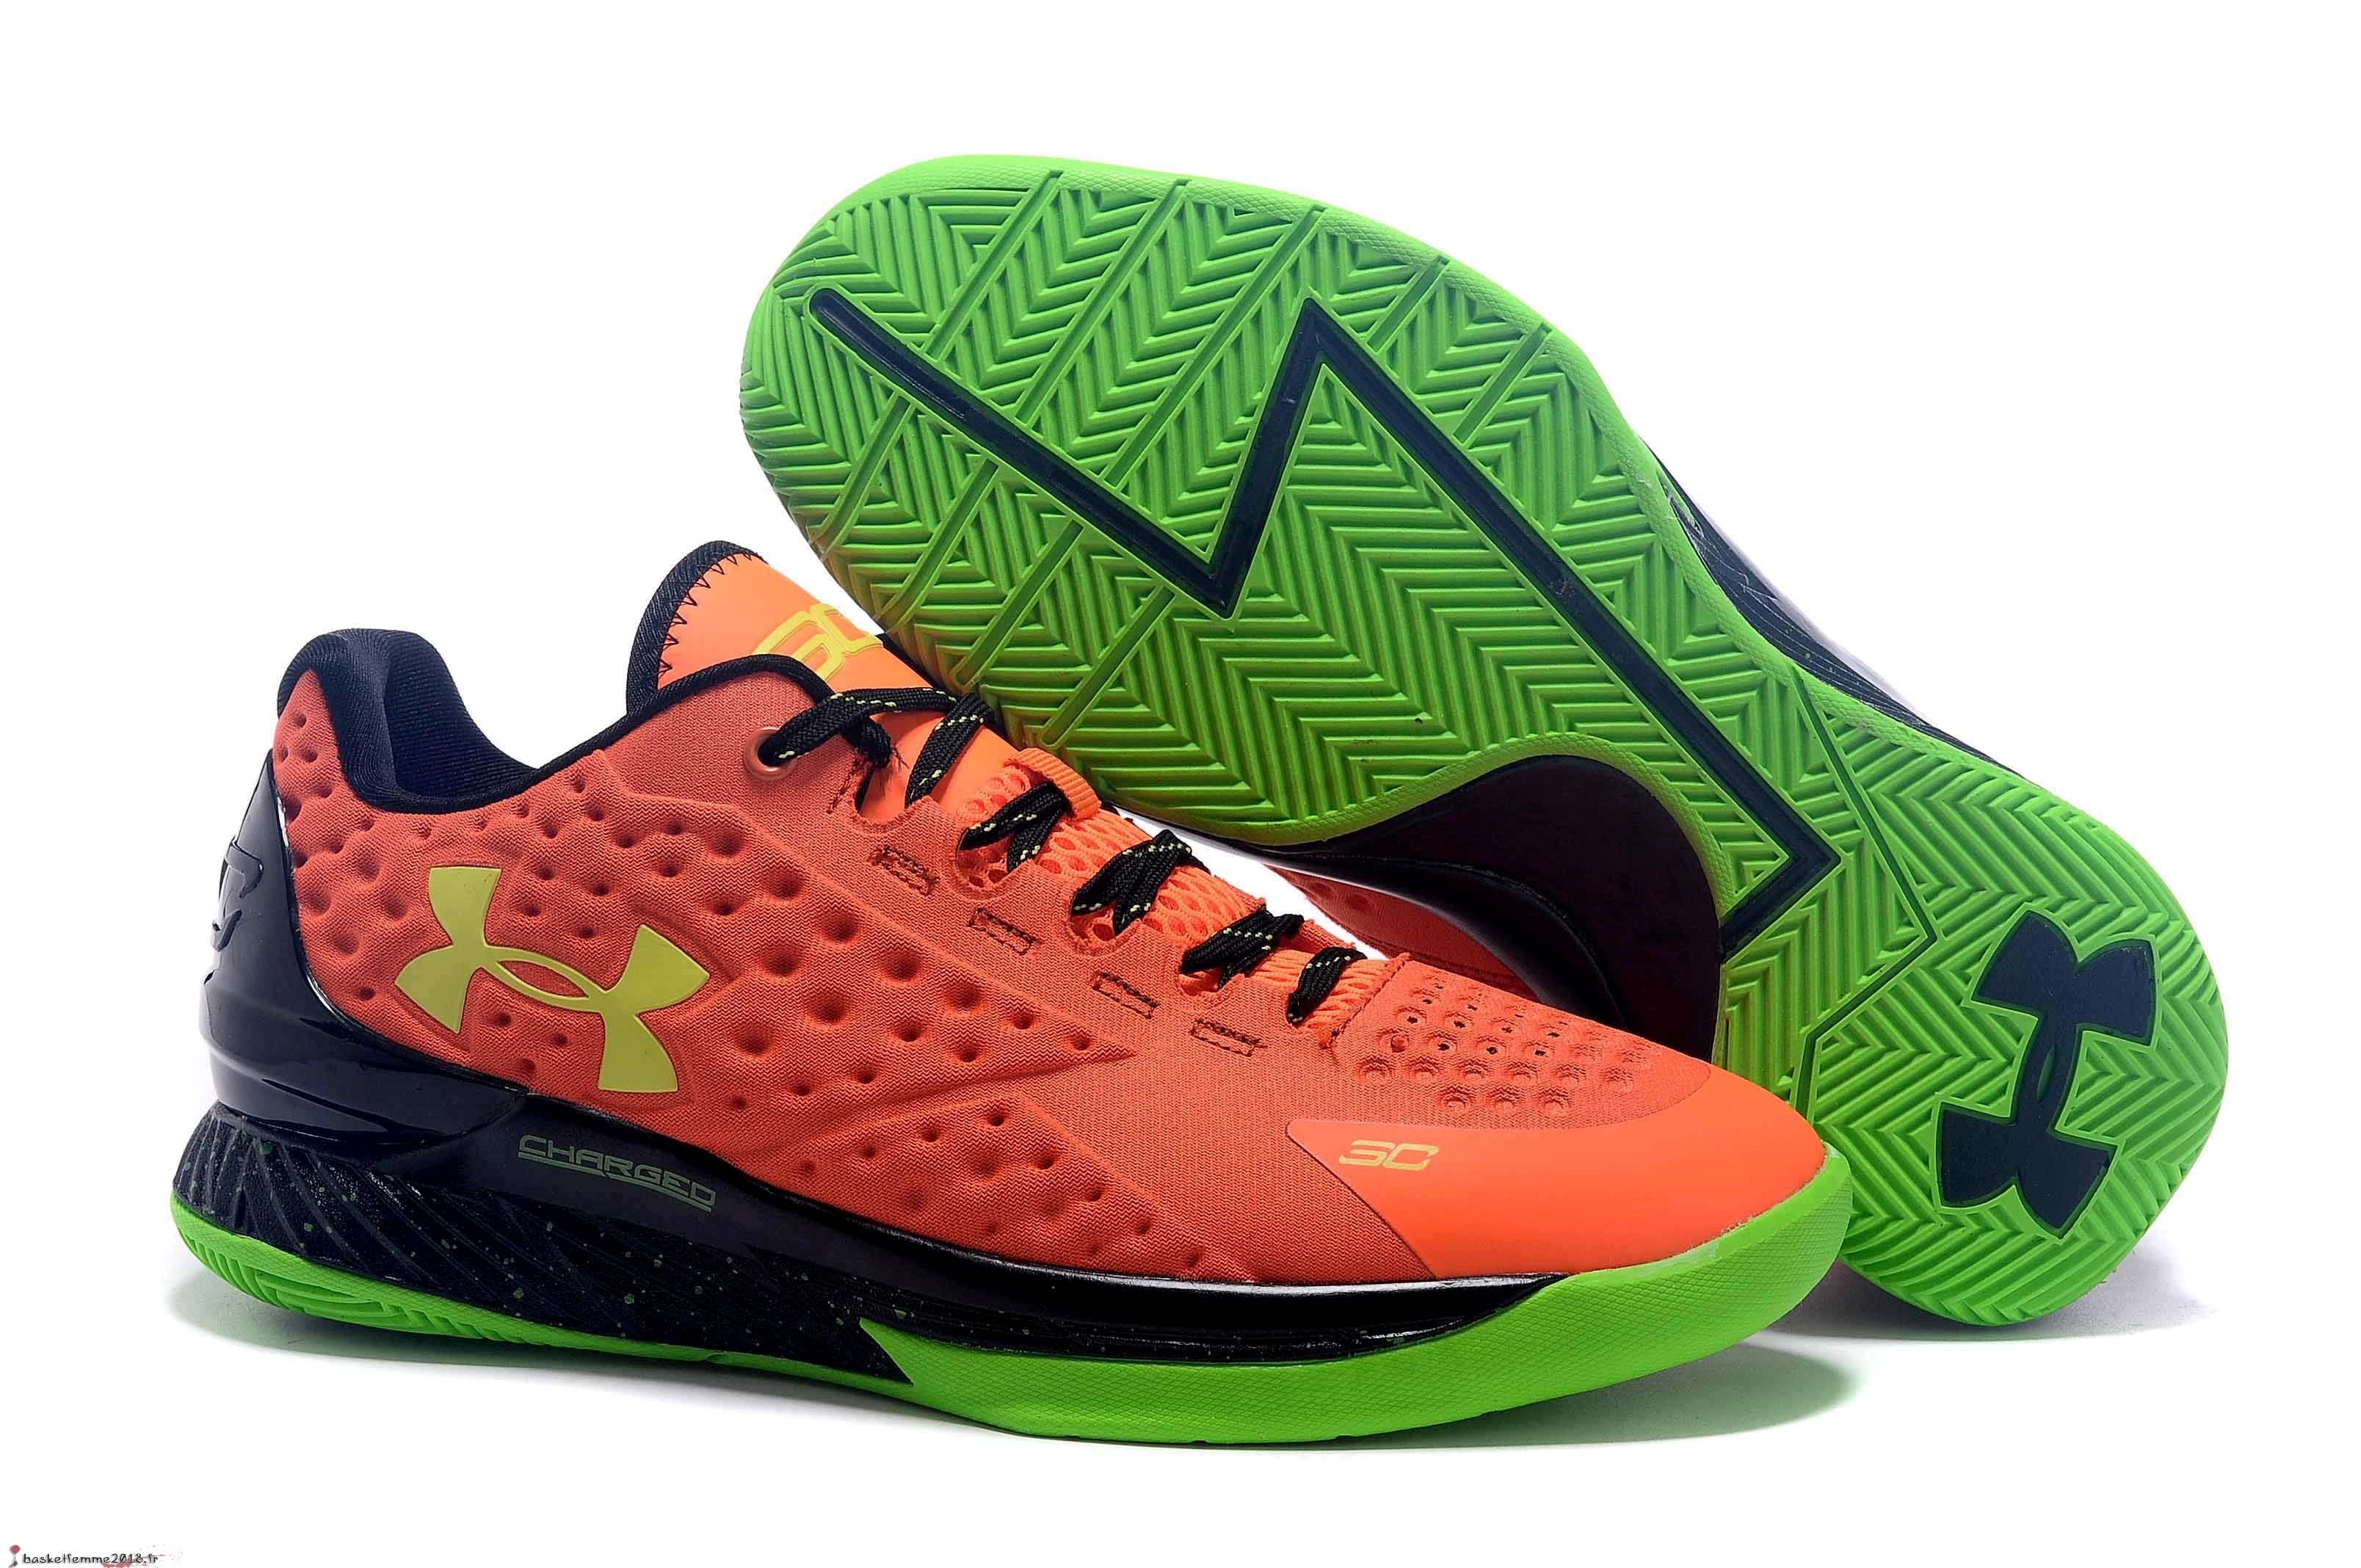 Stephen Curry 1 Femme Orange Vert Chaussure de Basket